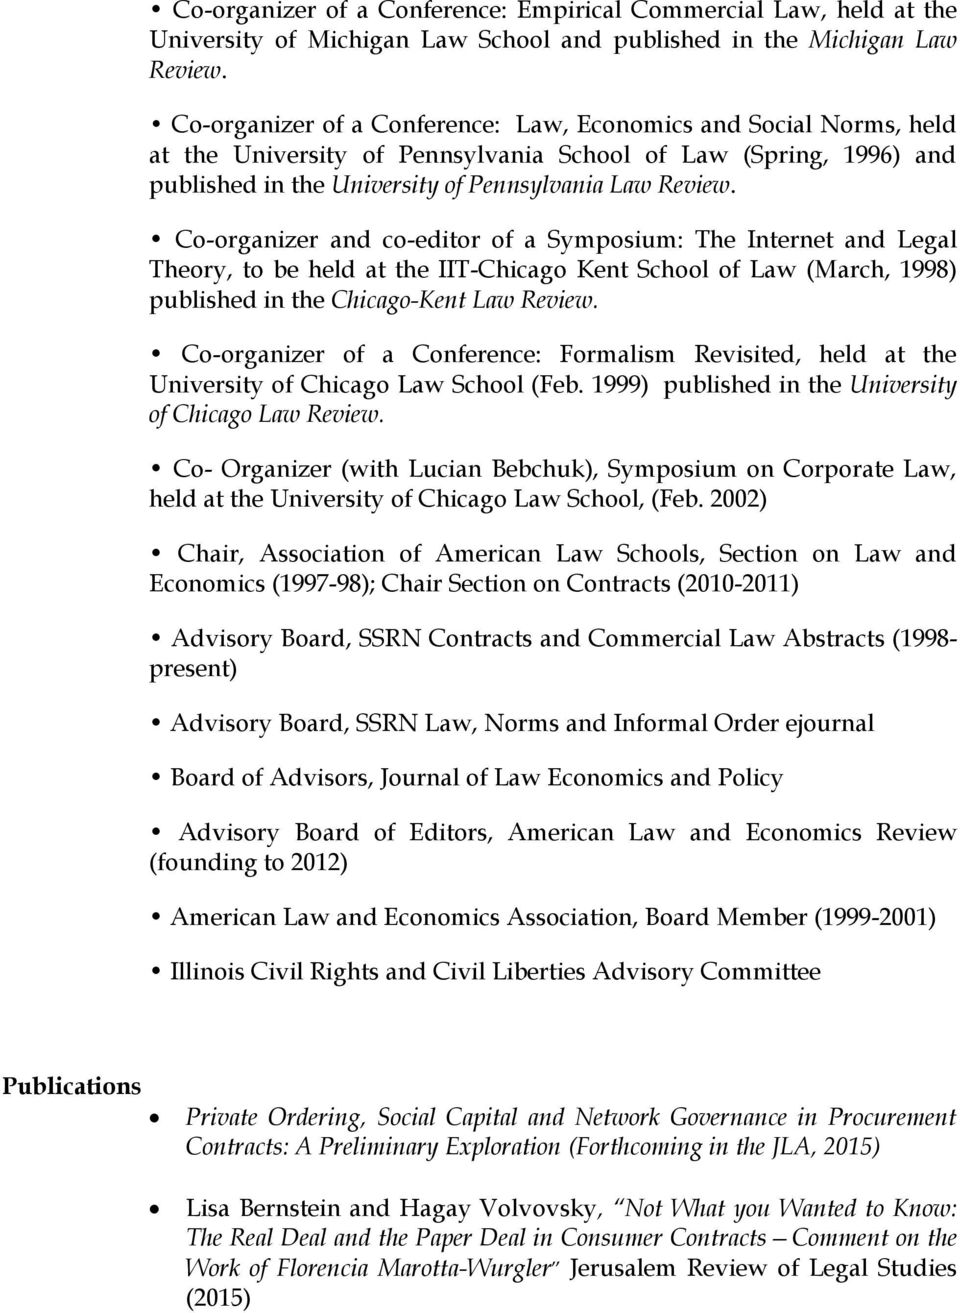 Co-organizer and co-editor of a Symposium: The Internet and Legal Theory, to be held at the IIT-Chicago Kent School of Law (March, 1998) published in the Chicago-Kent Law Review.